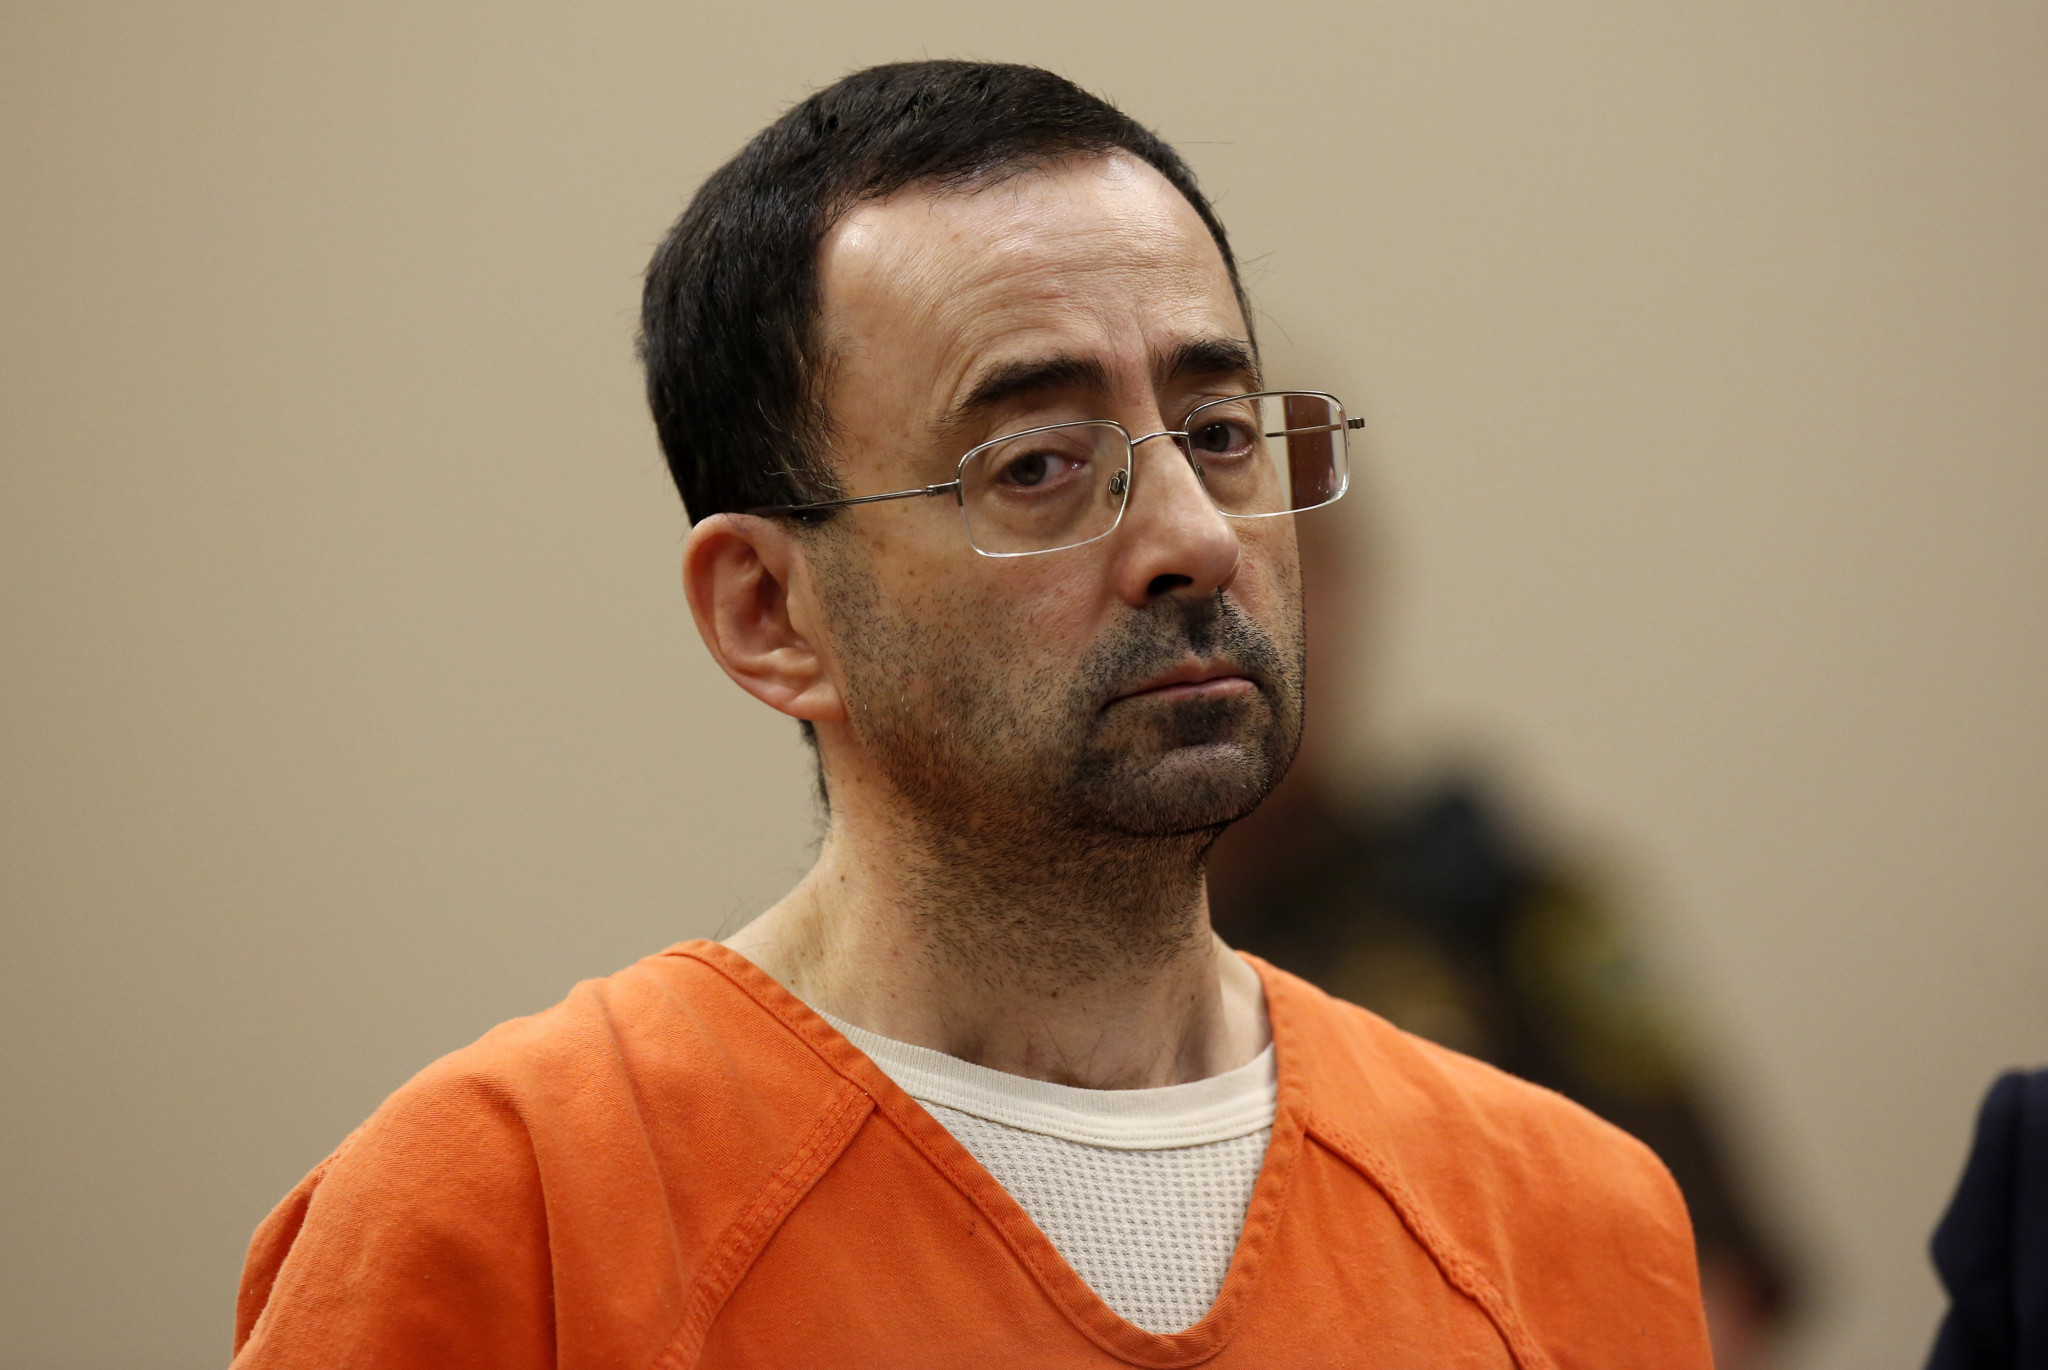 The scandal surrounding Larry Nassar has created growing pressure for change at USA Gymnastics ©Getty Images